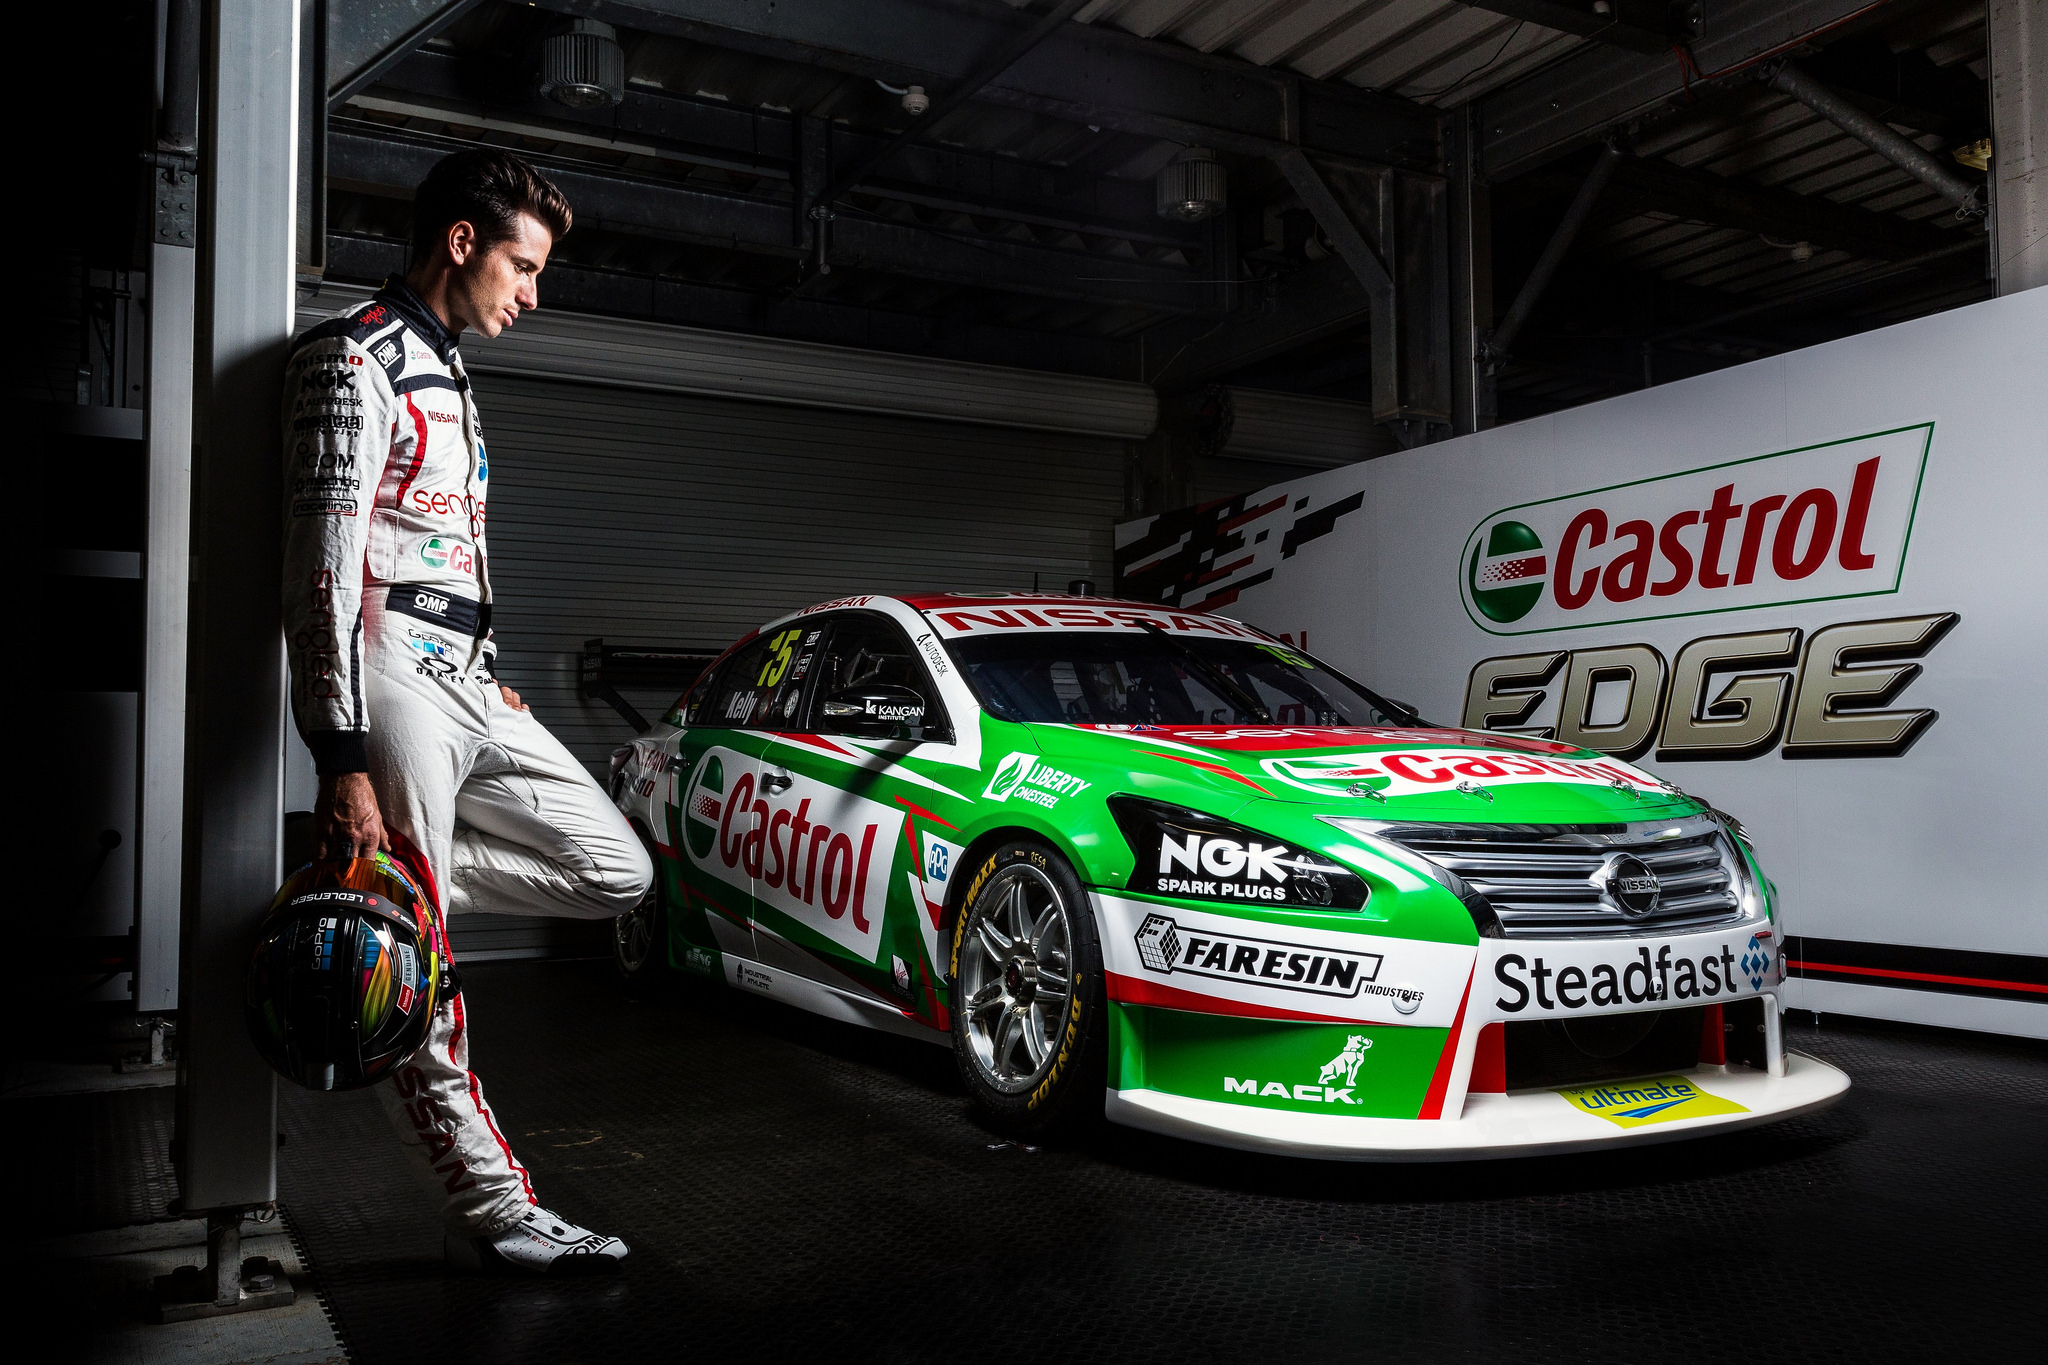 Castrol Racing Unveiled | Castrol Industry News & Events ...